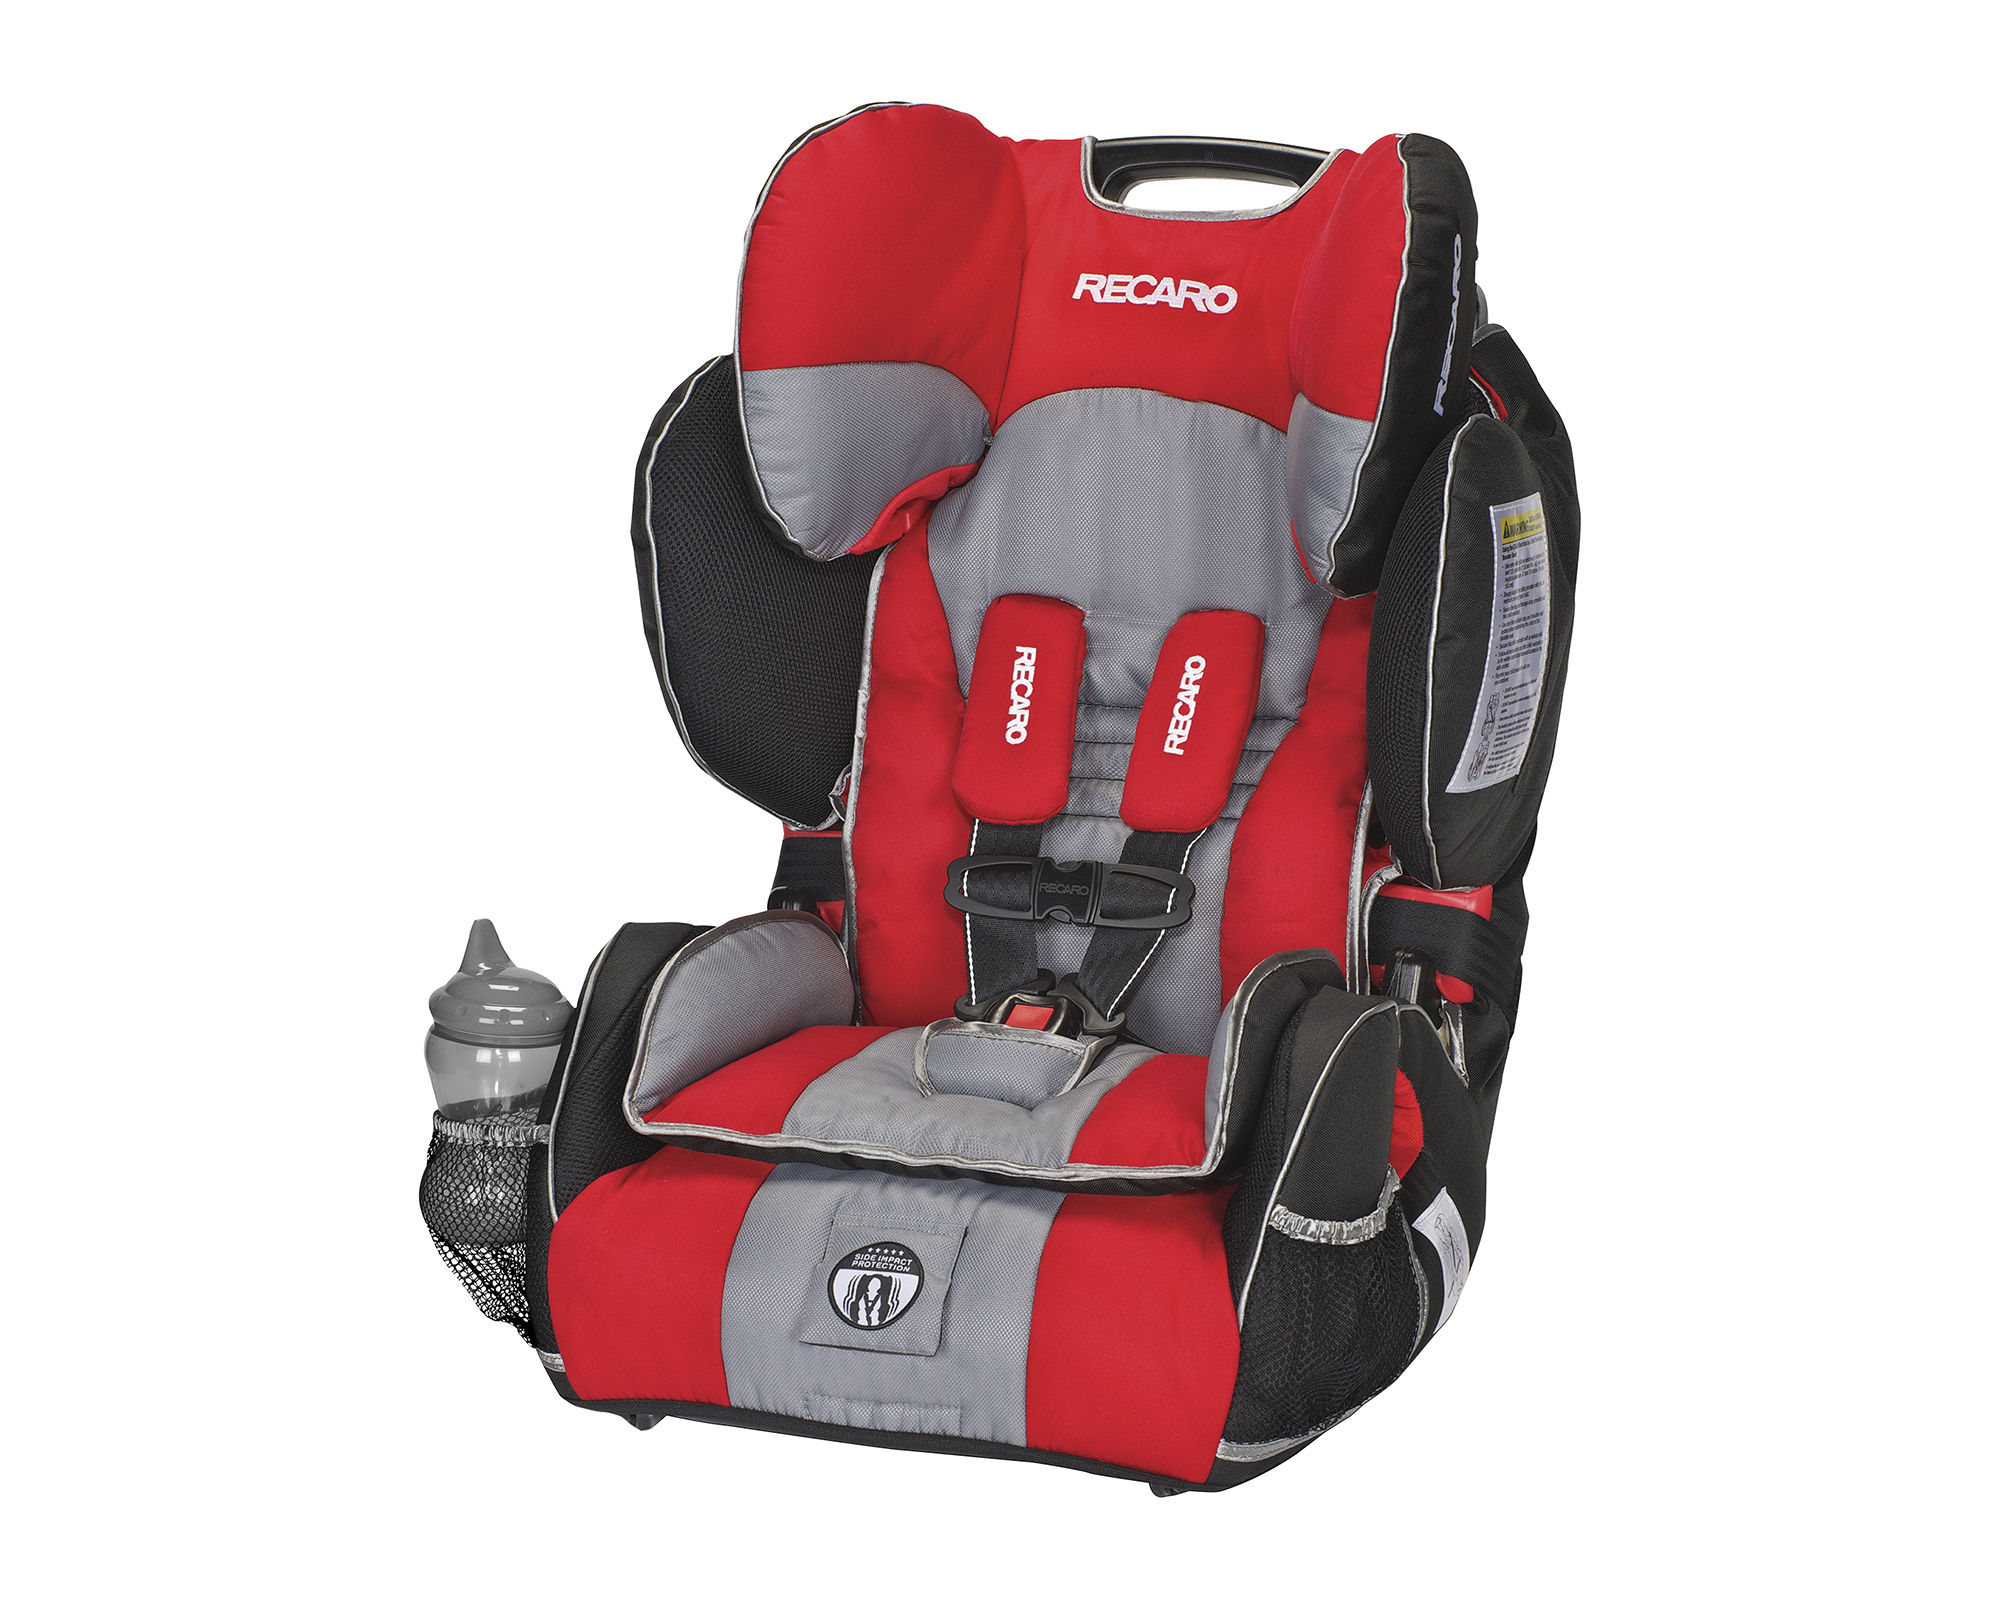 Recaro Performance Sport Harness Booster Car Seat - Redd